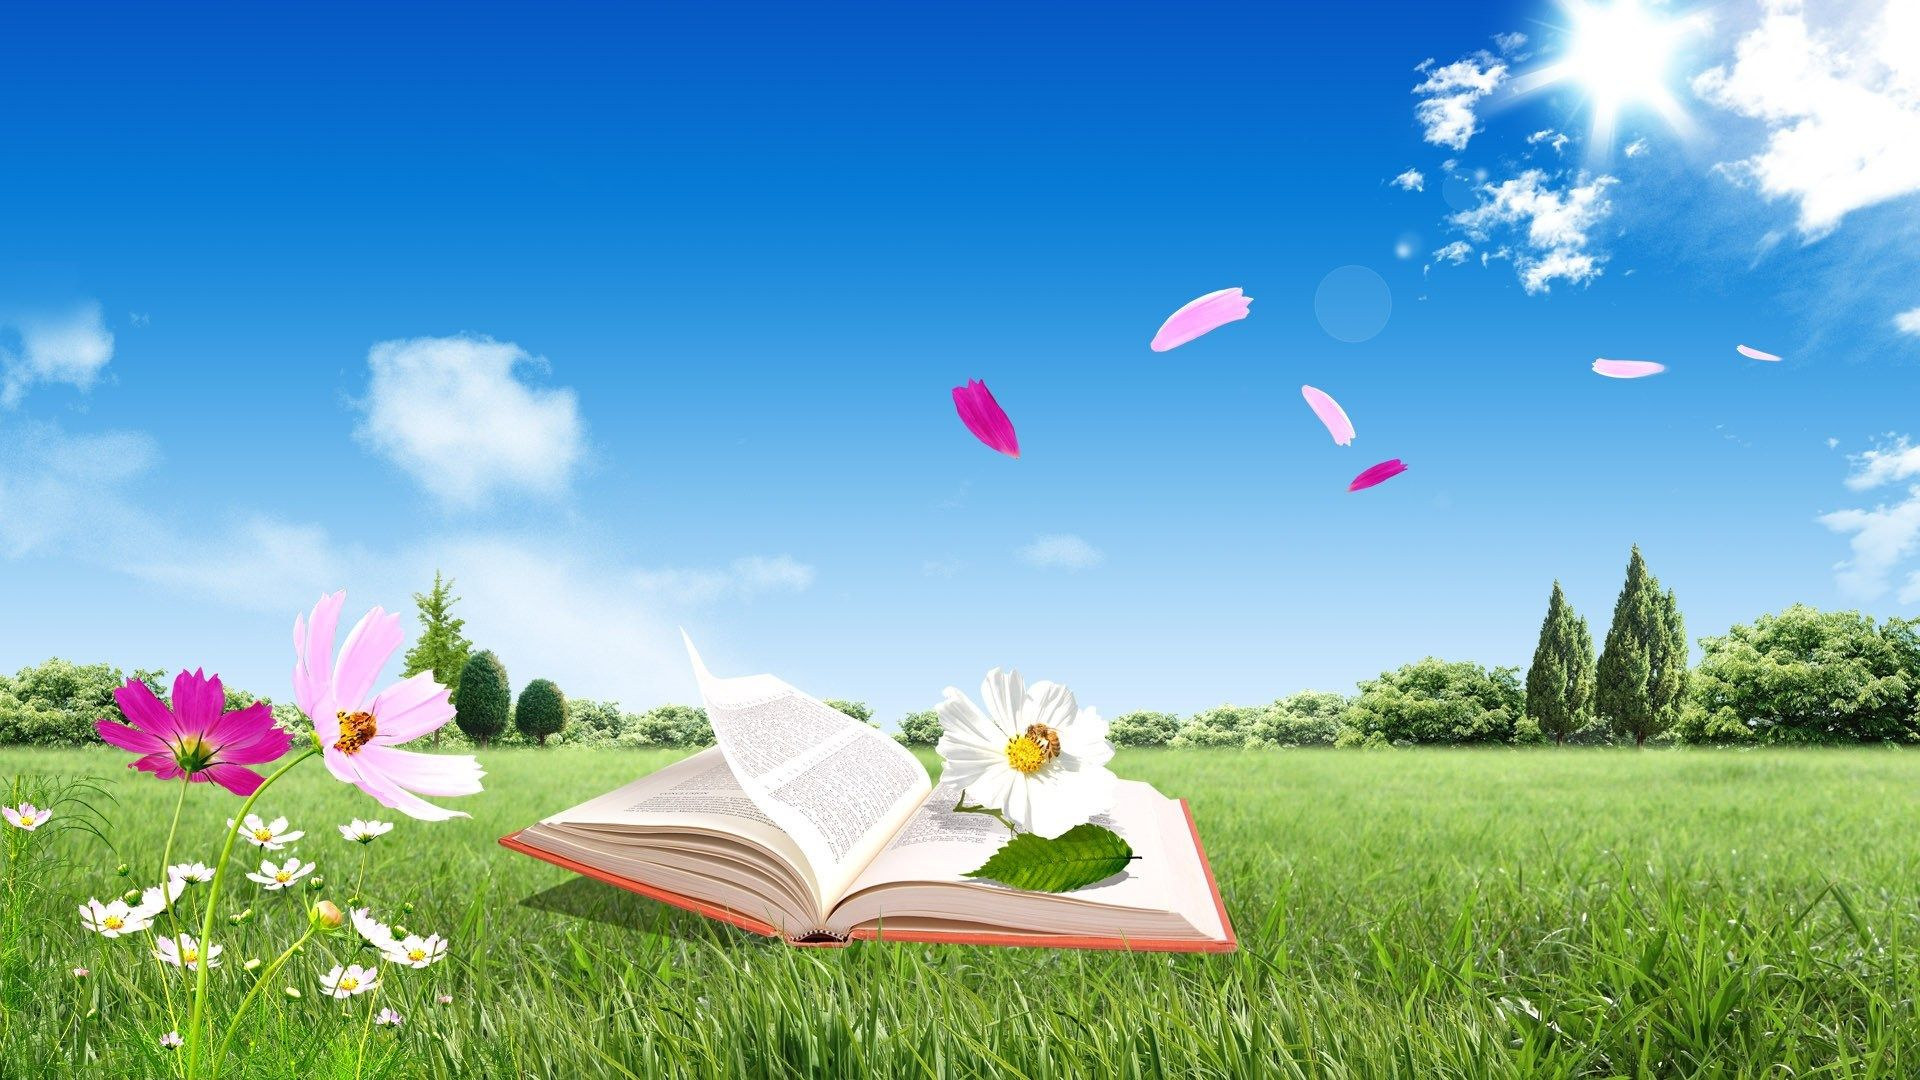 Book Wallpapers Hd Images Download